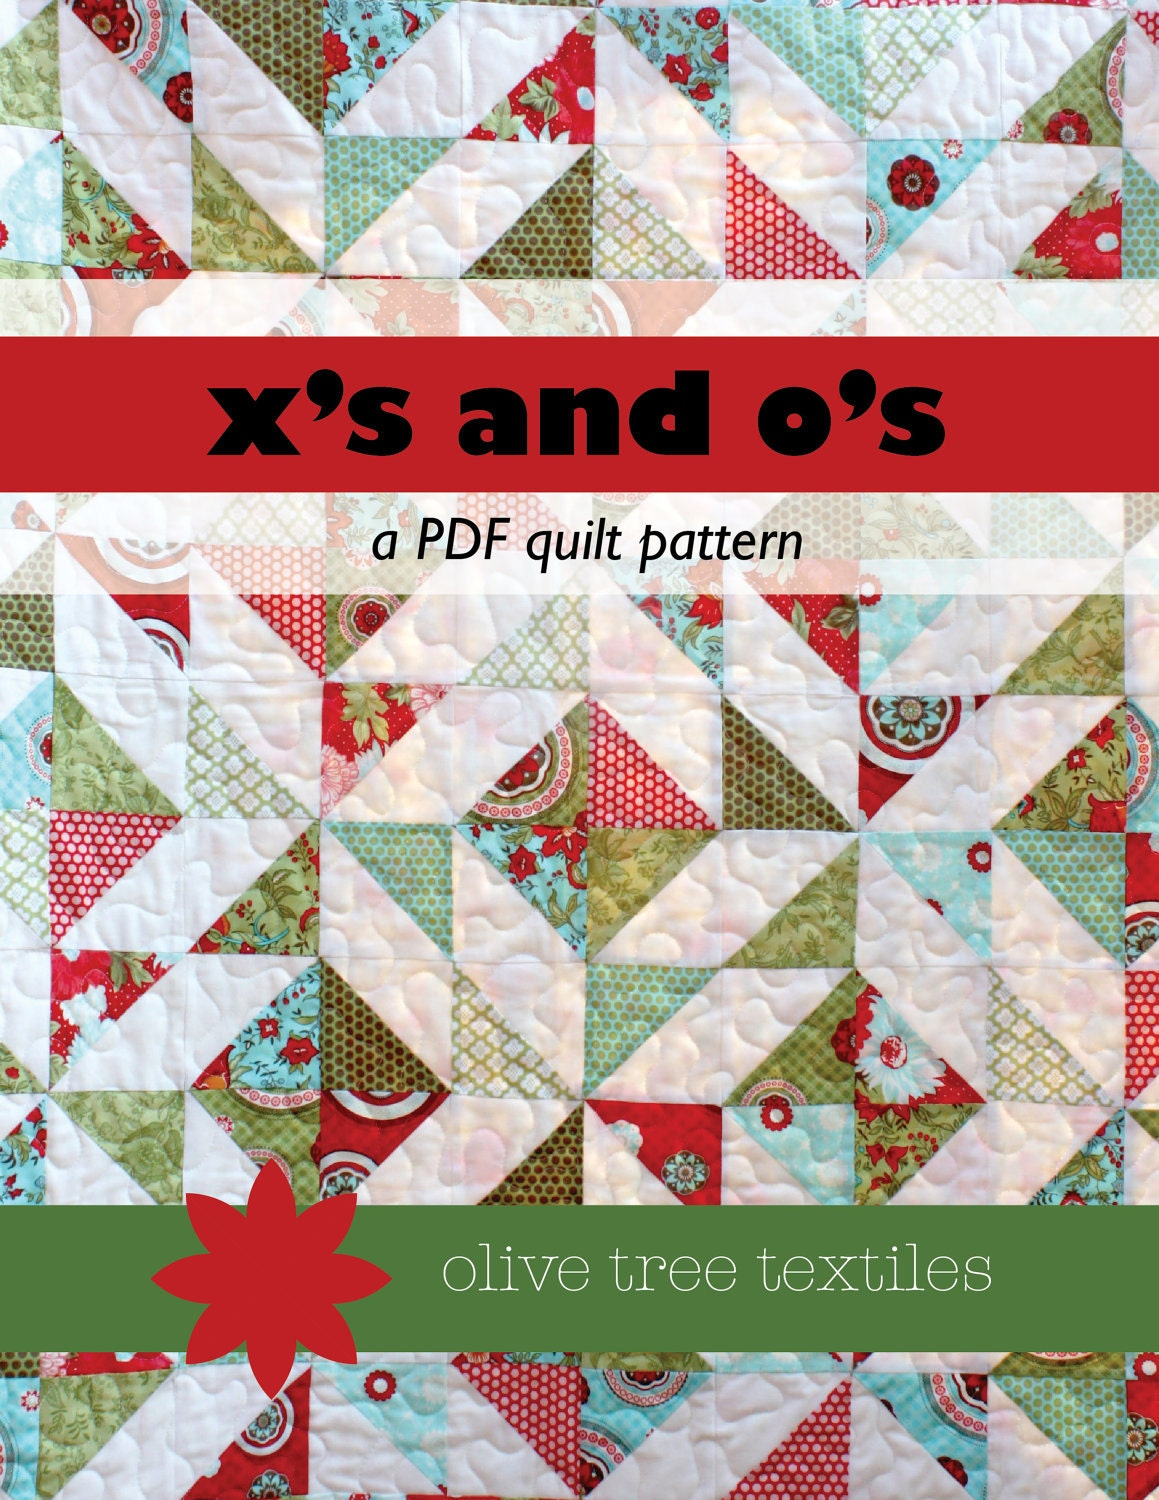 Modern Quilt Patterns Free Download : modern quilt pattern PDF // x s and o s